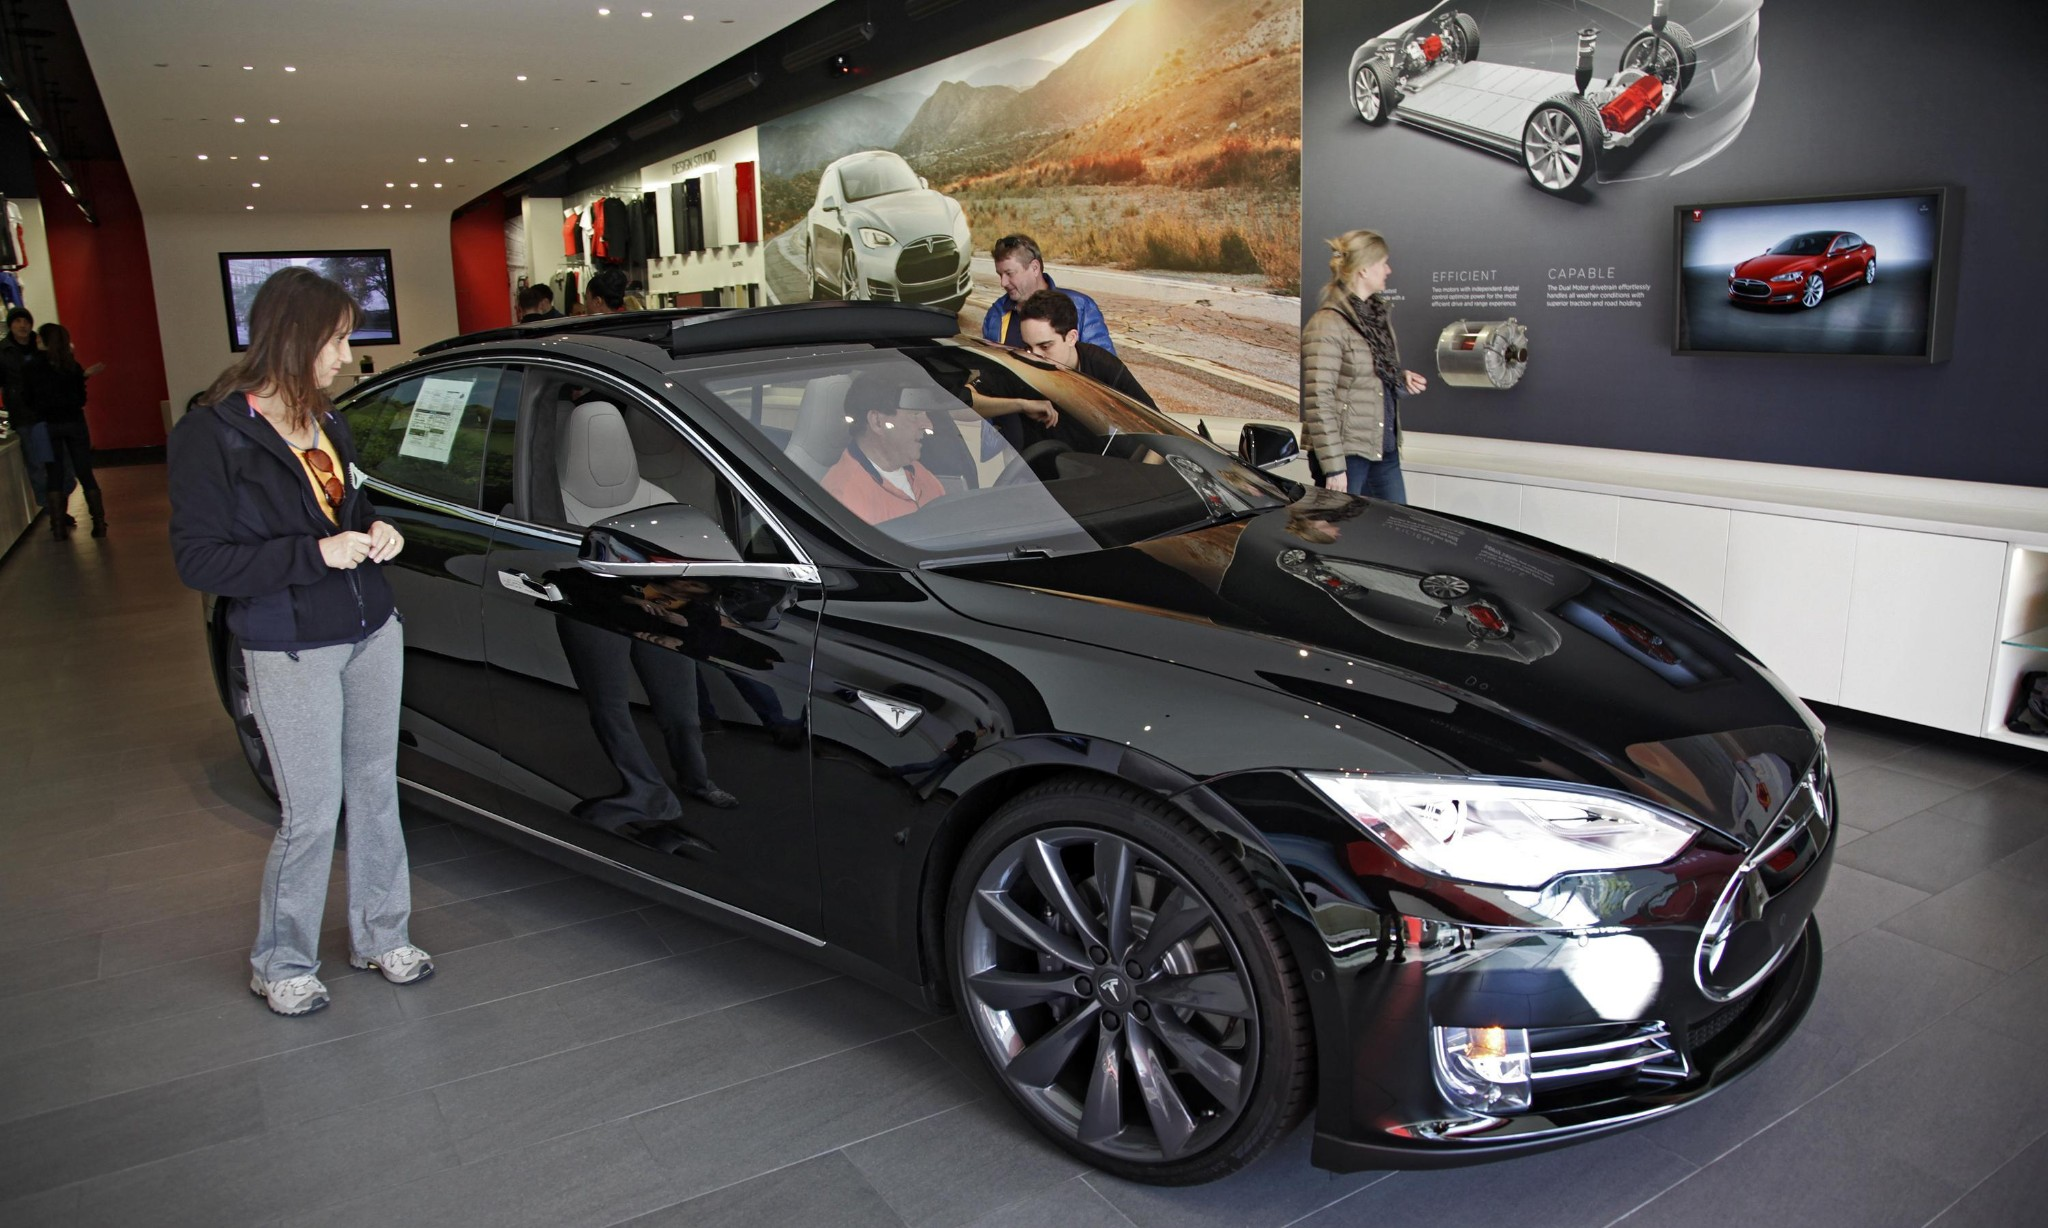 Tesla sues Michigan over ban on selling cars directly to customers